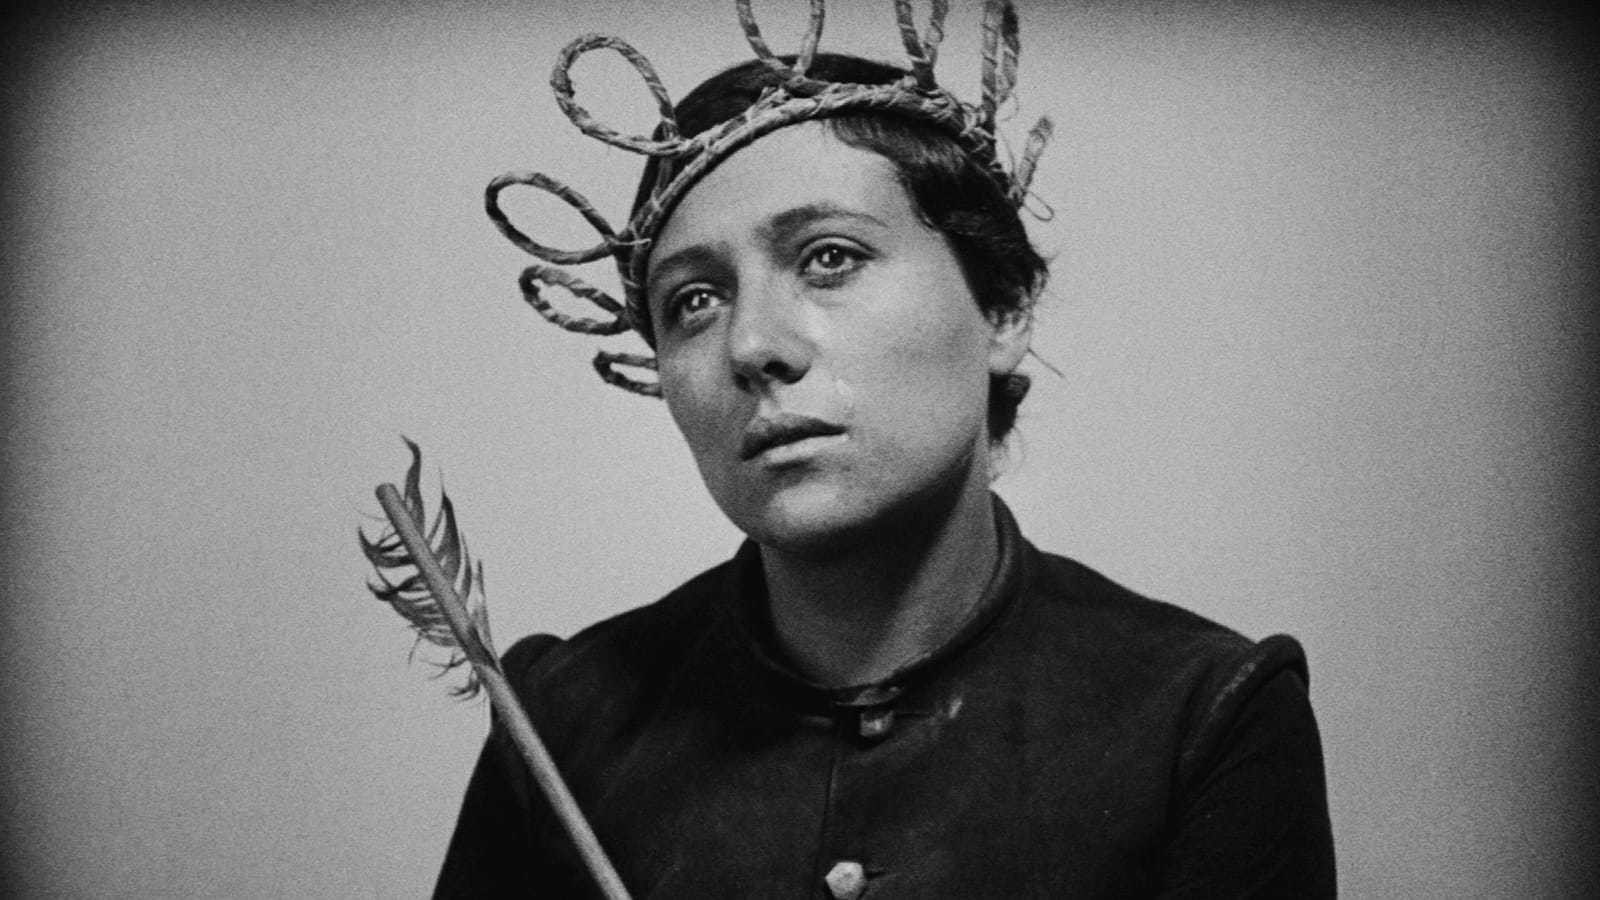 The Passion of Joan of Arc backdrop